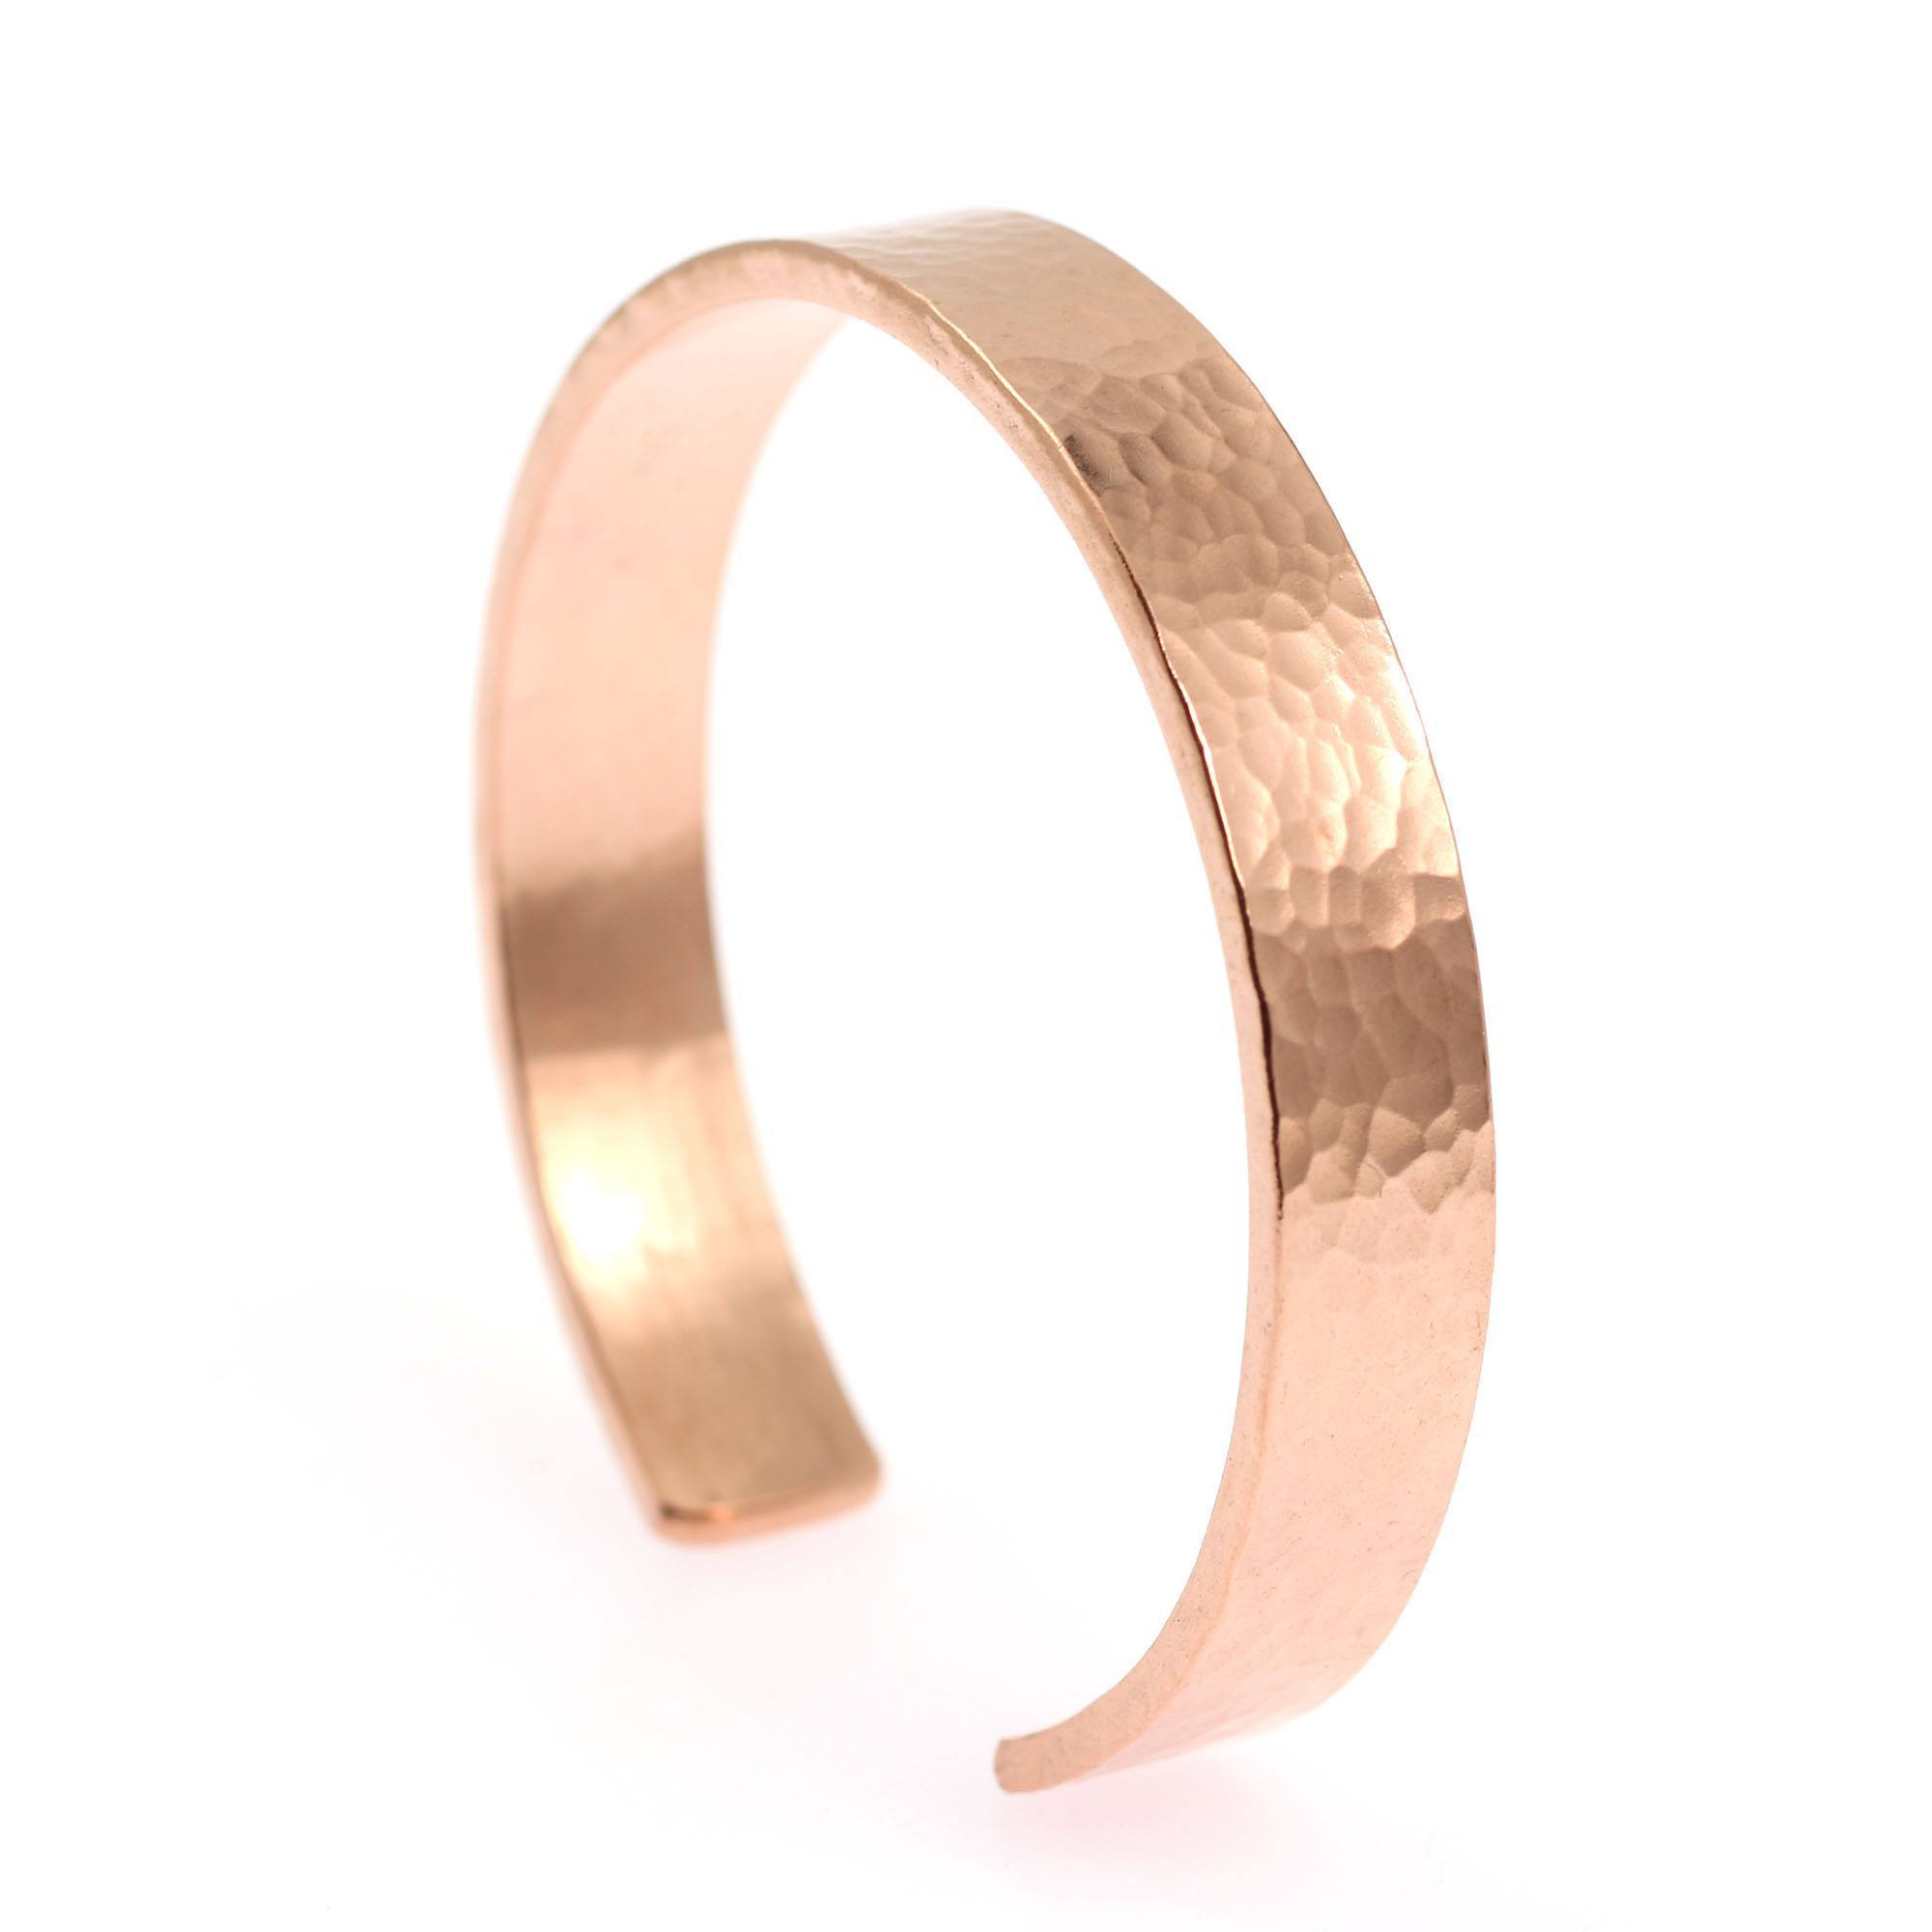 sarah rings jewelry coper copper products sincerely